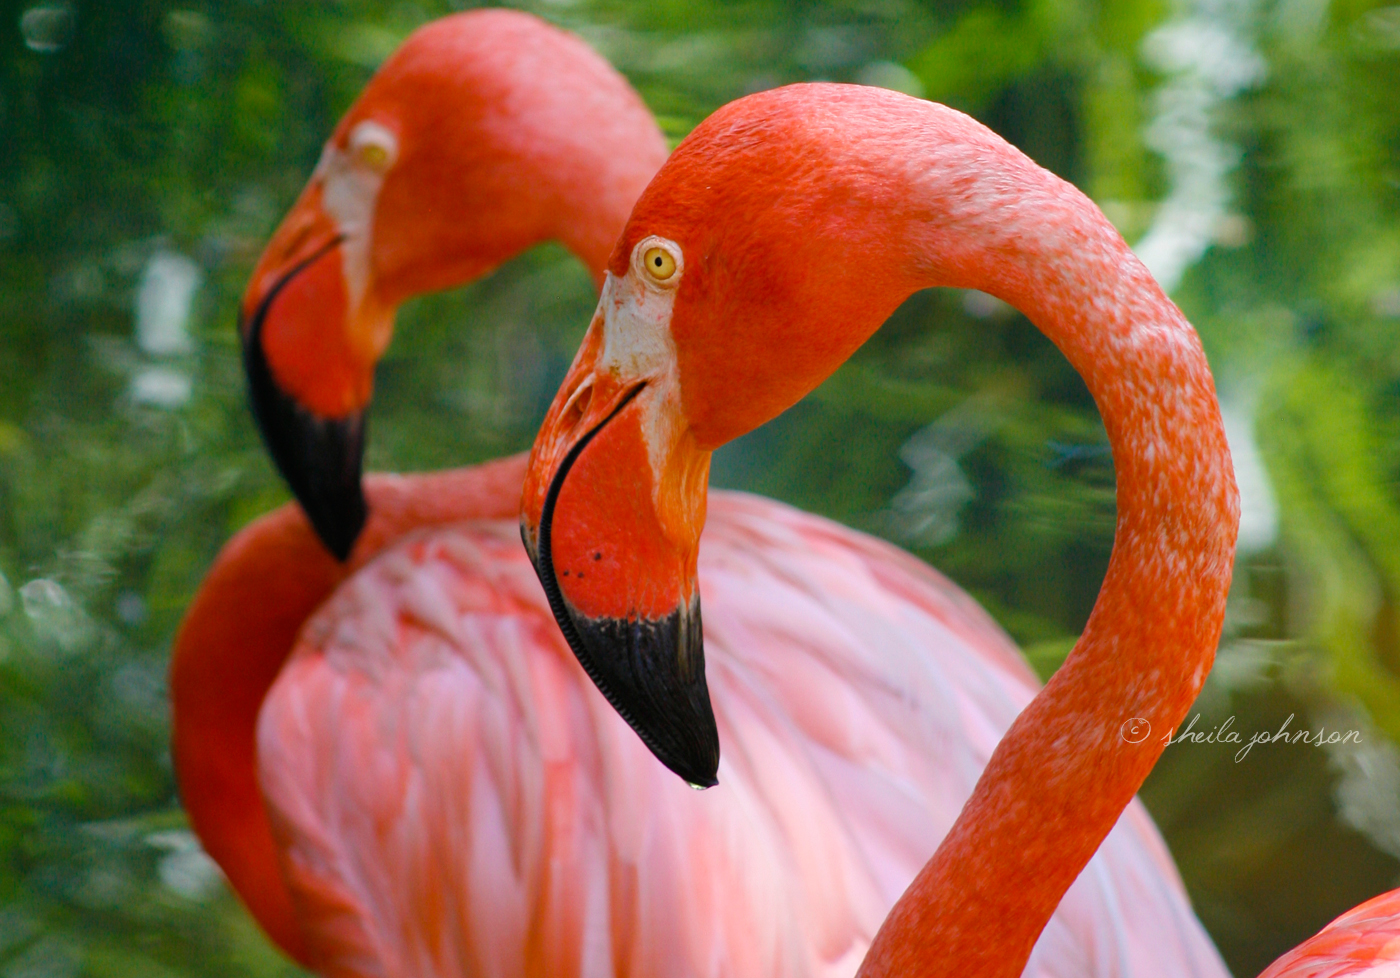 The Only Thing Pinker Than One Pink Flamingo? Two Pink Flamingos! This Photo Opportunity Was Given Me By The Palm Beach Zoo, A Favorite Stomping Ground.